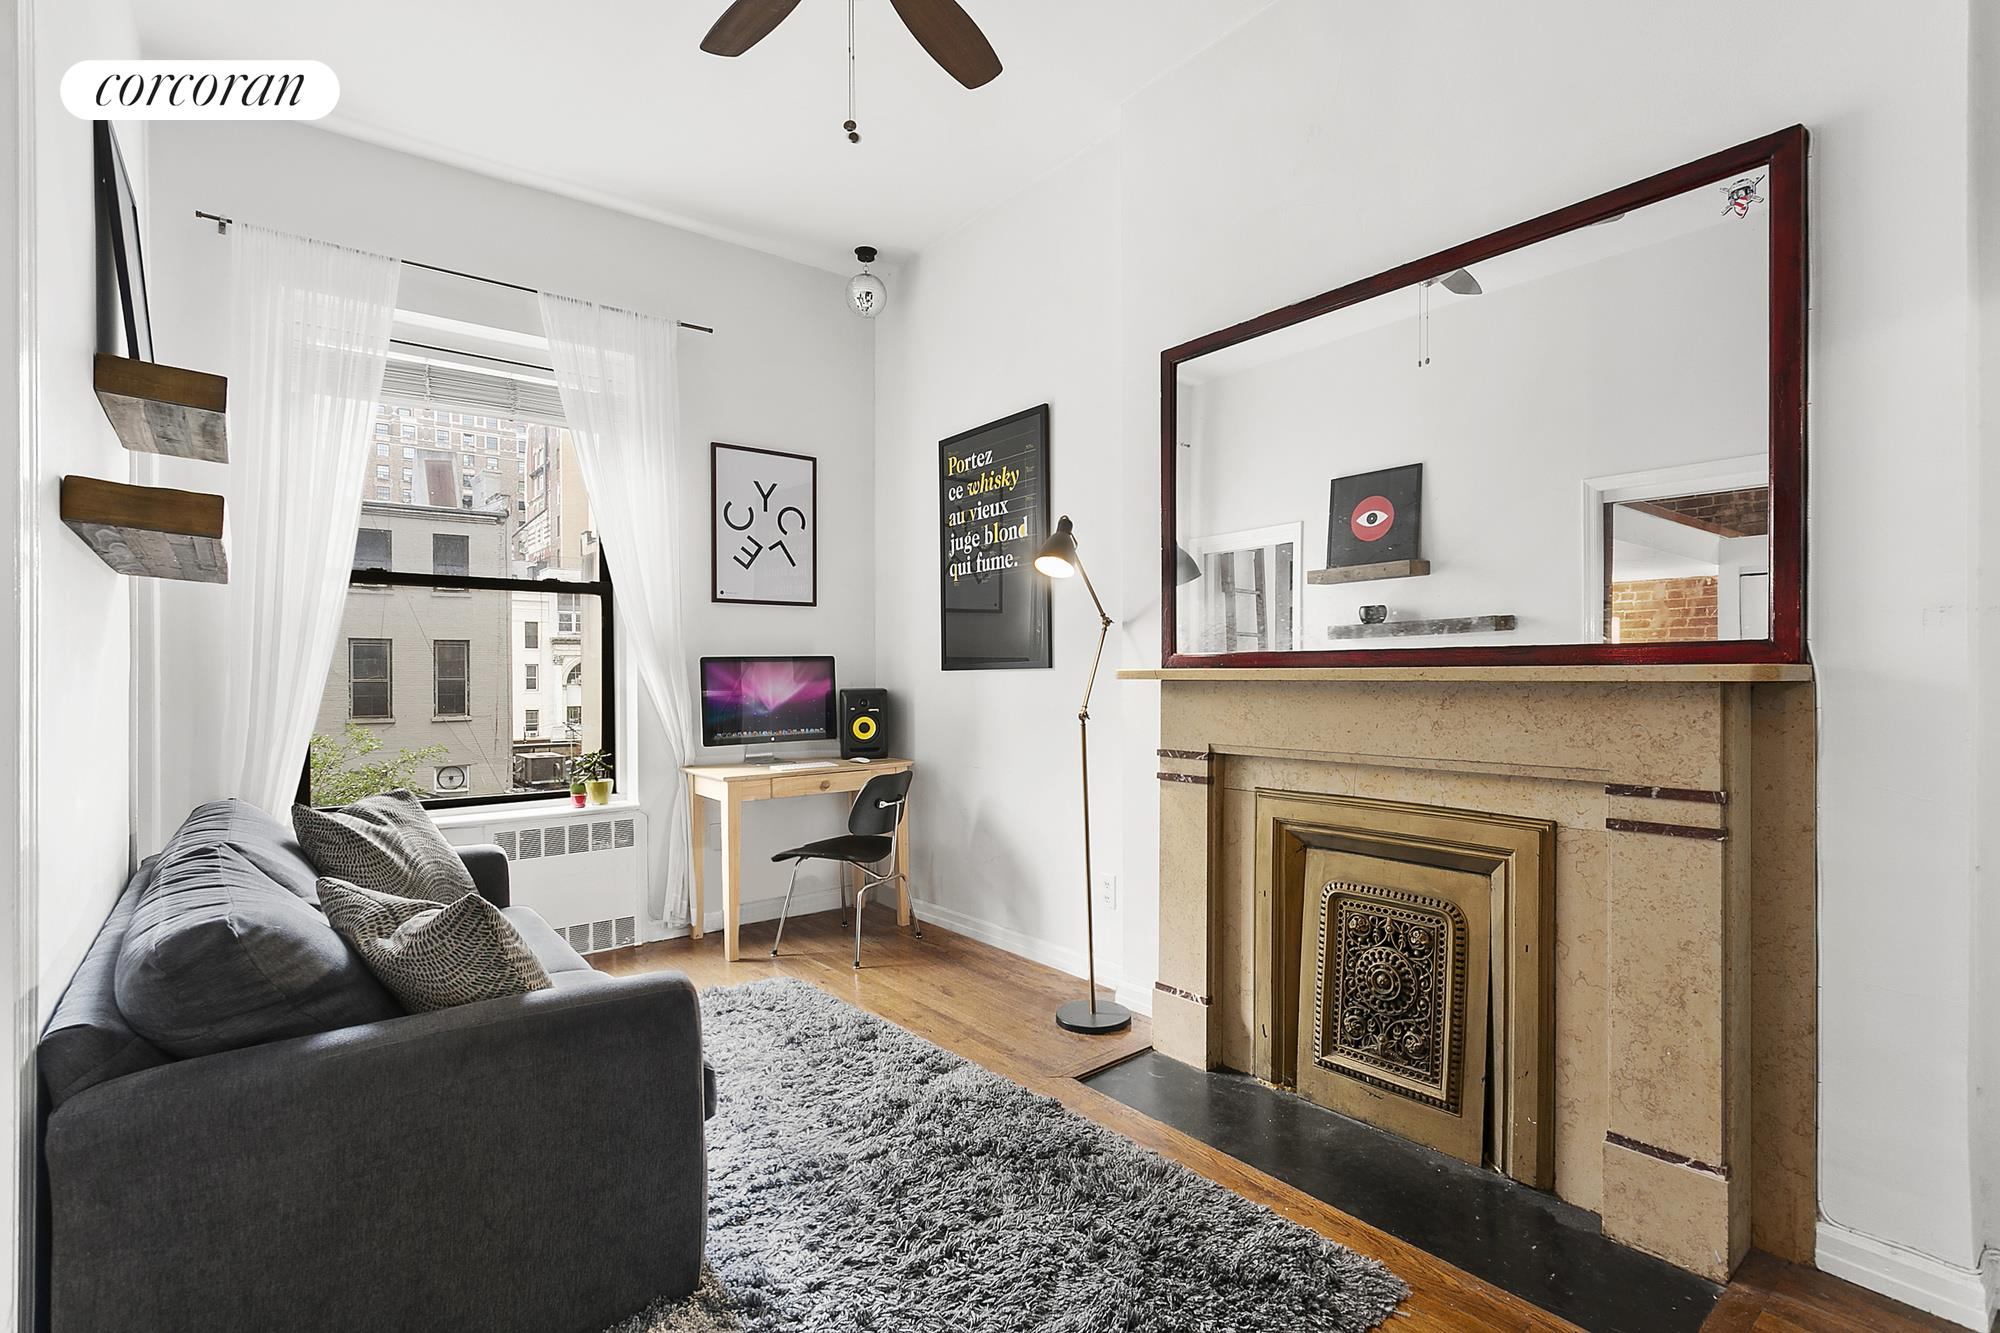 corcoran kyle rogers west side 888 seventh avenue realtor real